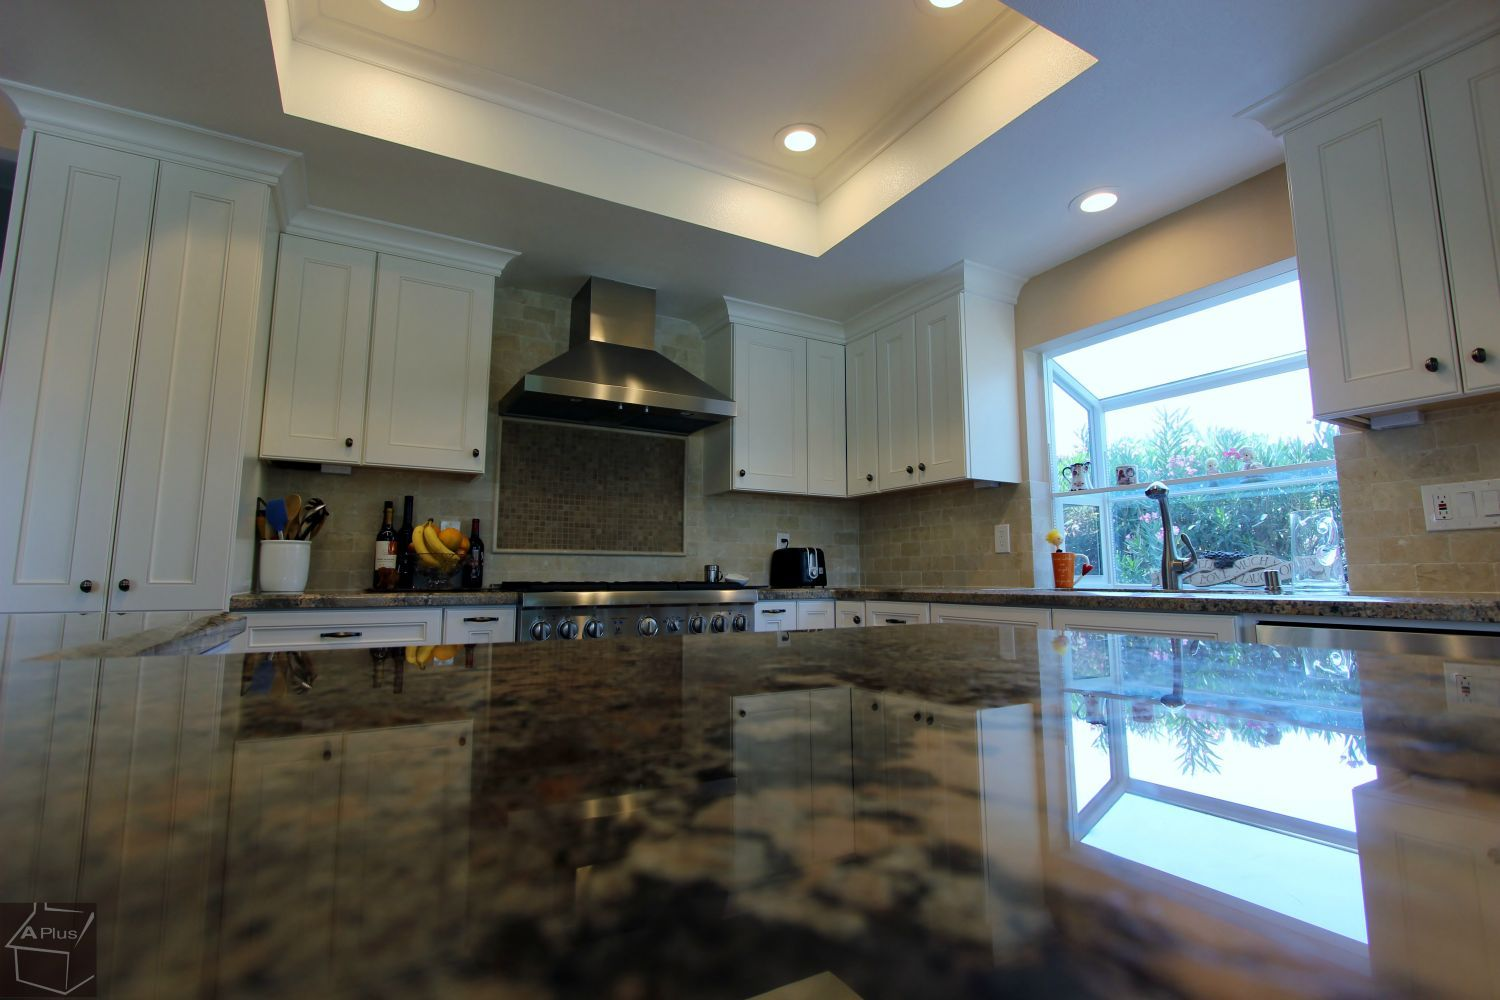 Kitchen Designer Orange County New Beautiful Transitional Style Kitchen In Yorba Linda Orange County Review